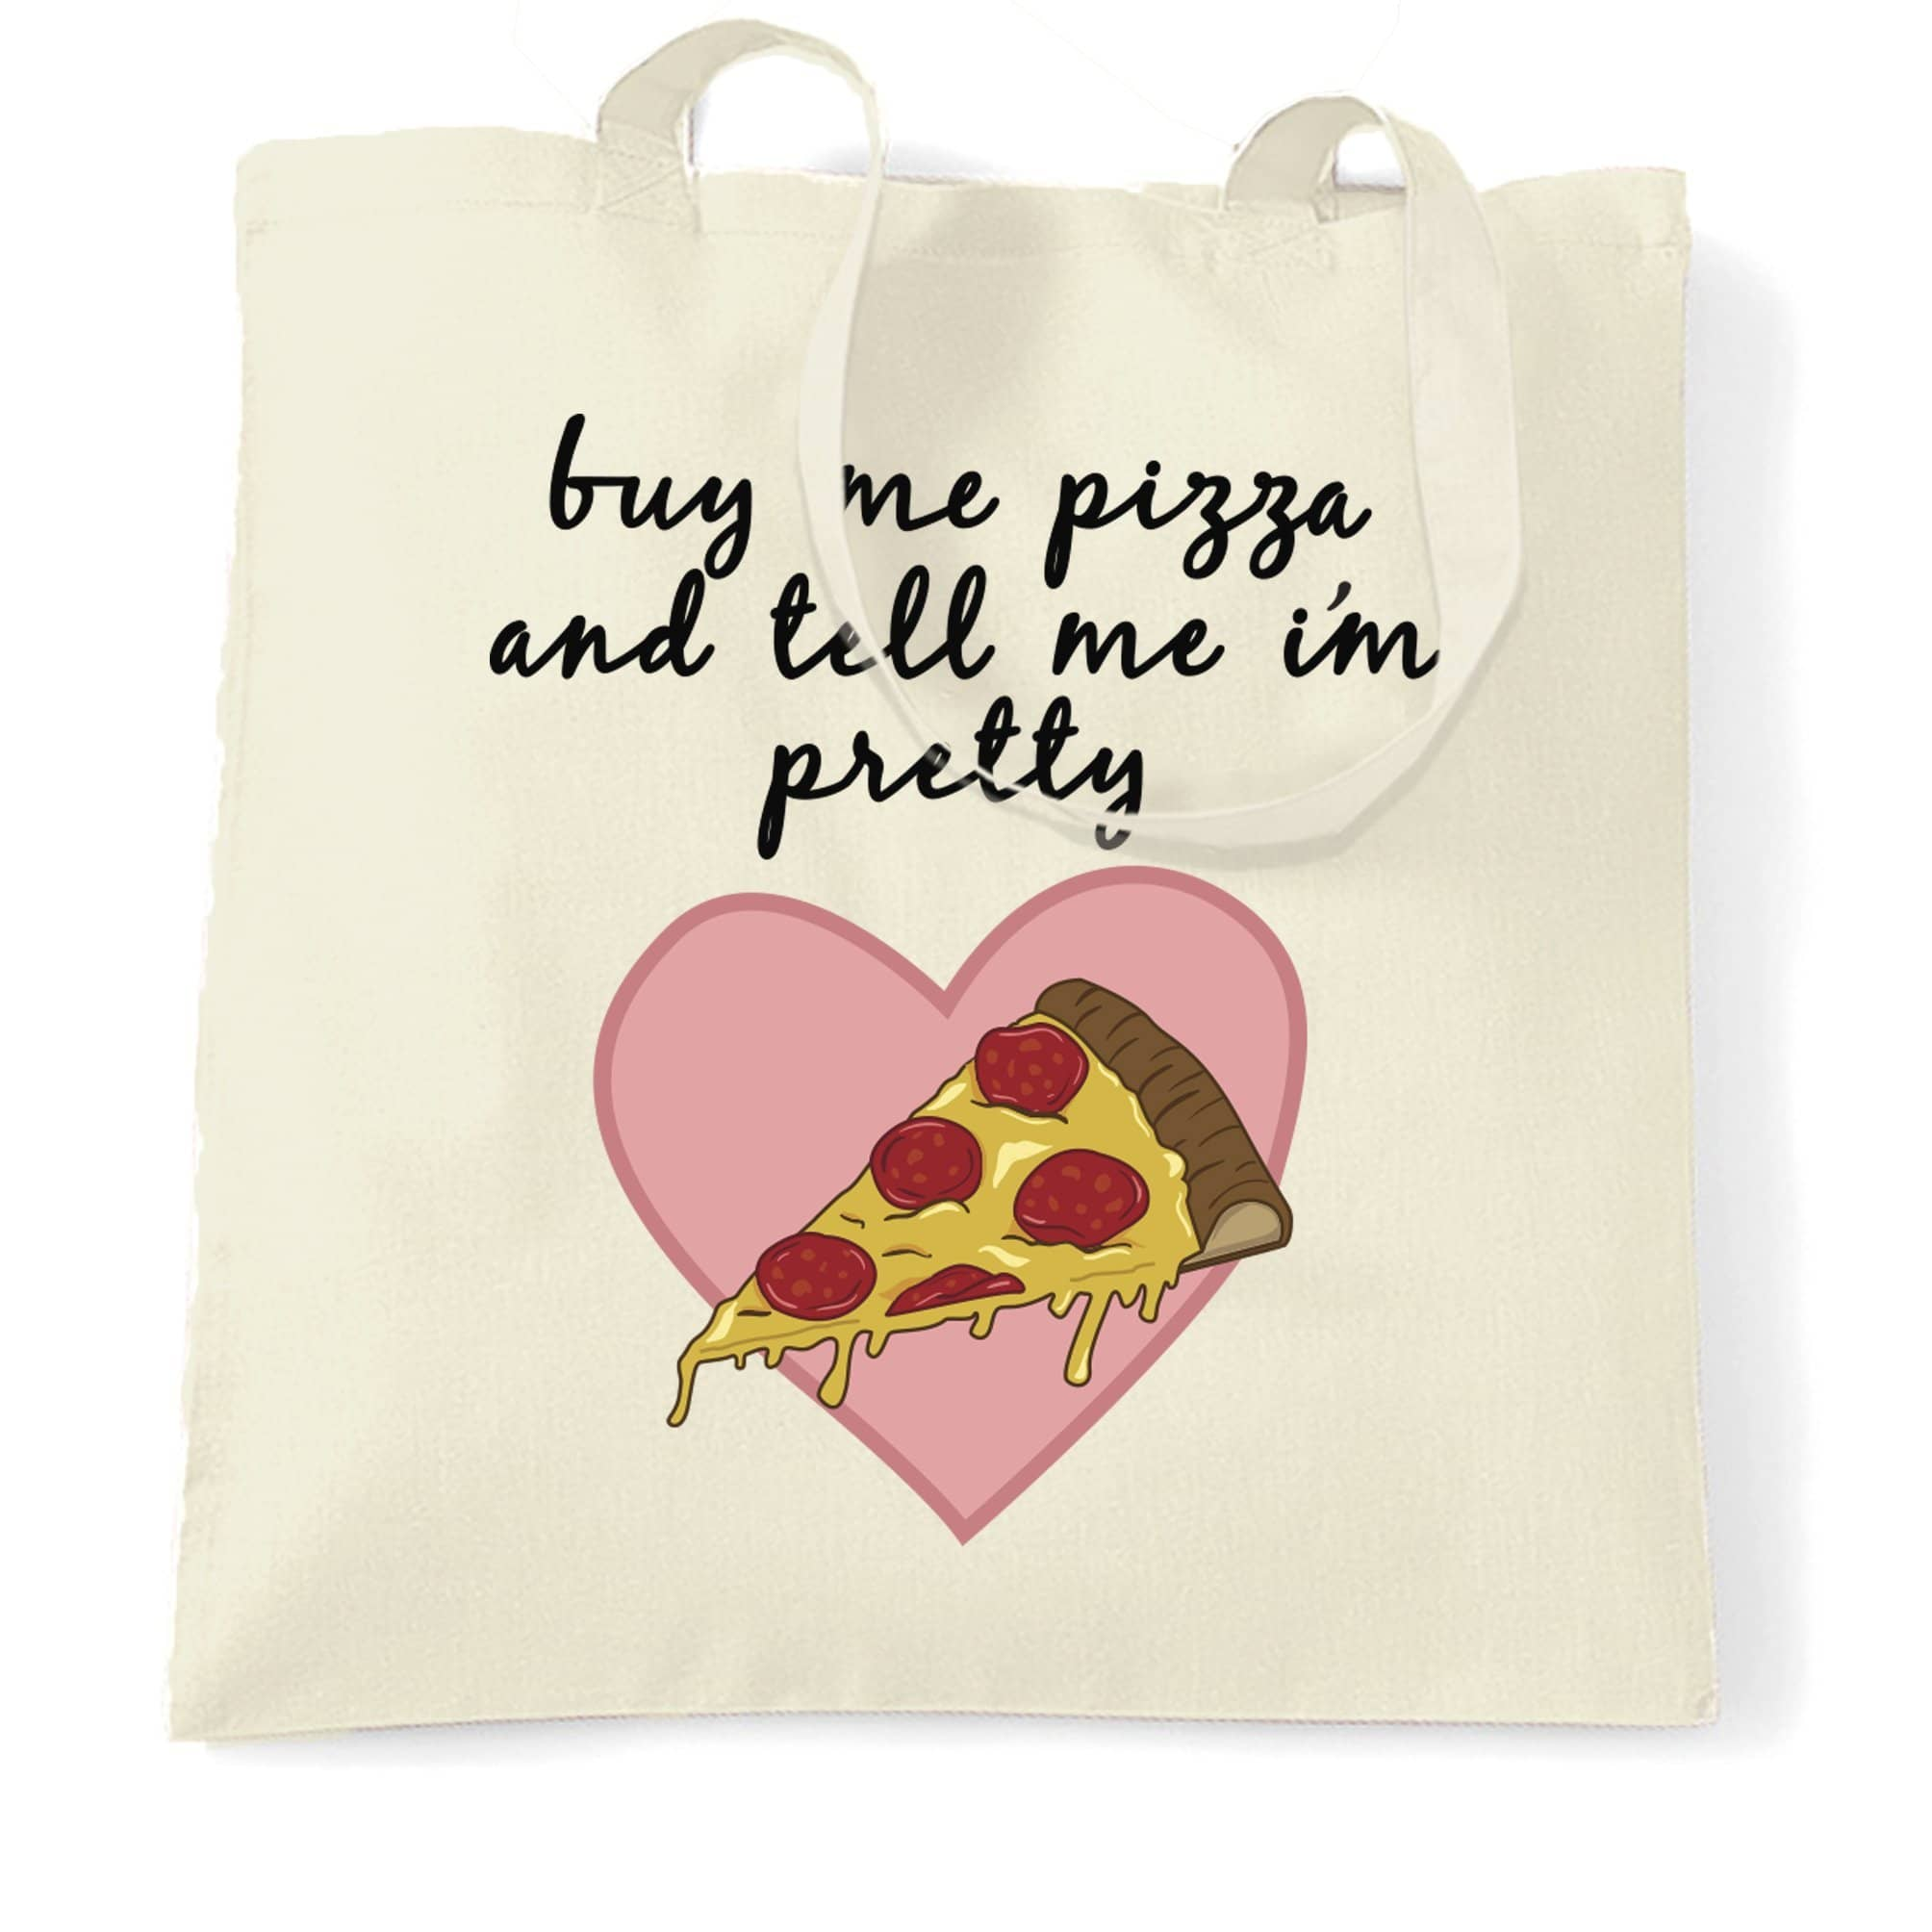 Joke Food Tote Bag Buy Me Pizza And Tell Me I'm Pretty